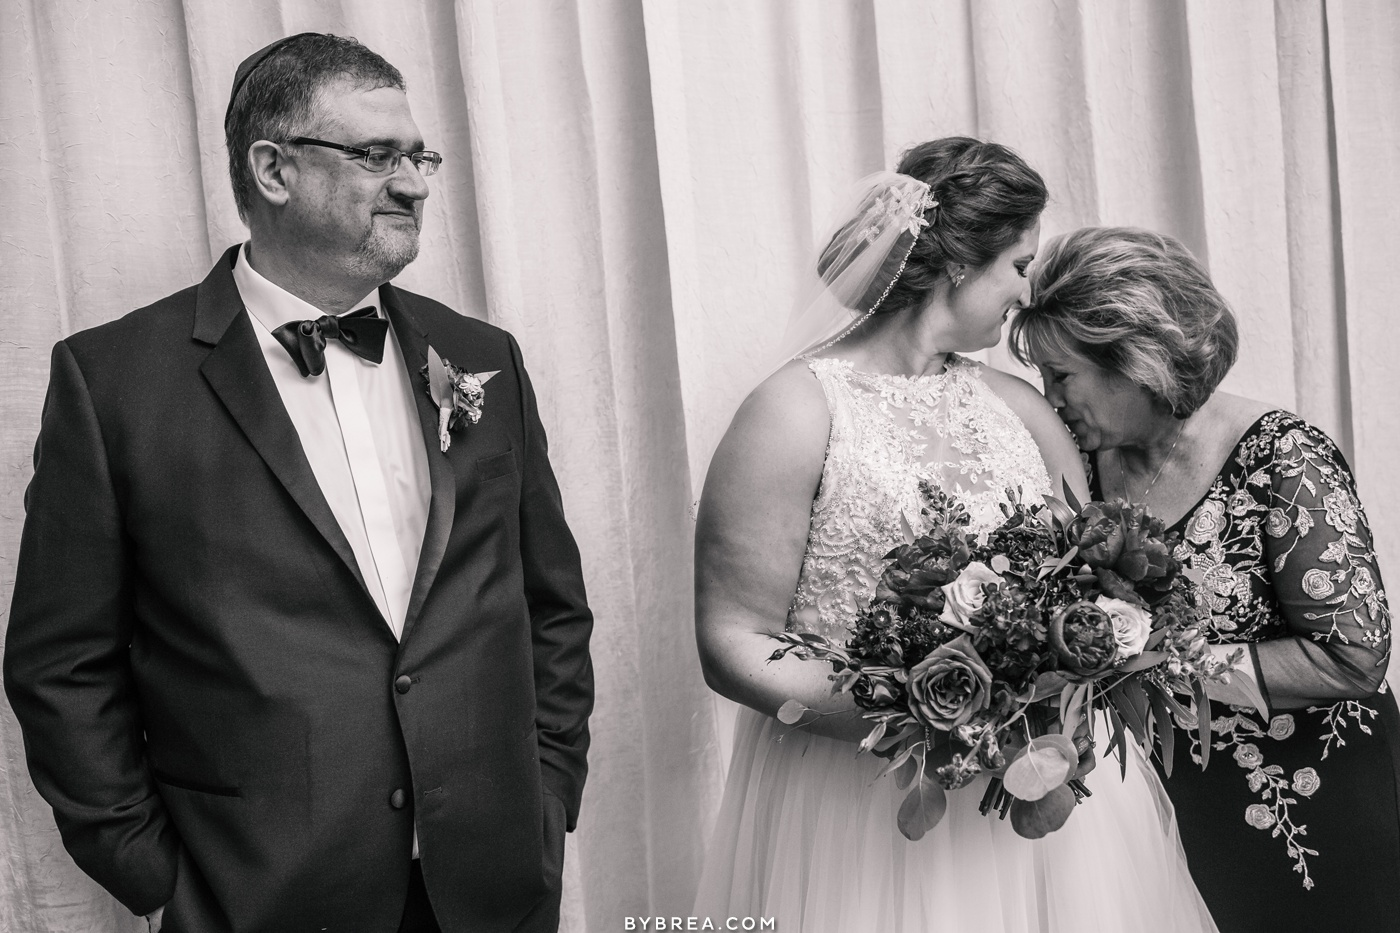 Emotional moment between mother and bride before ceremony starts at Park Hyatt D.C.